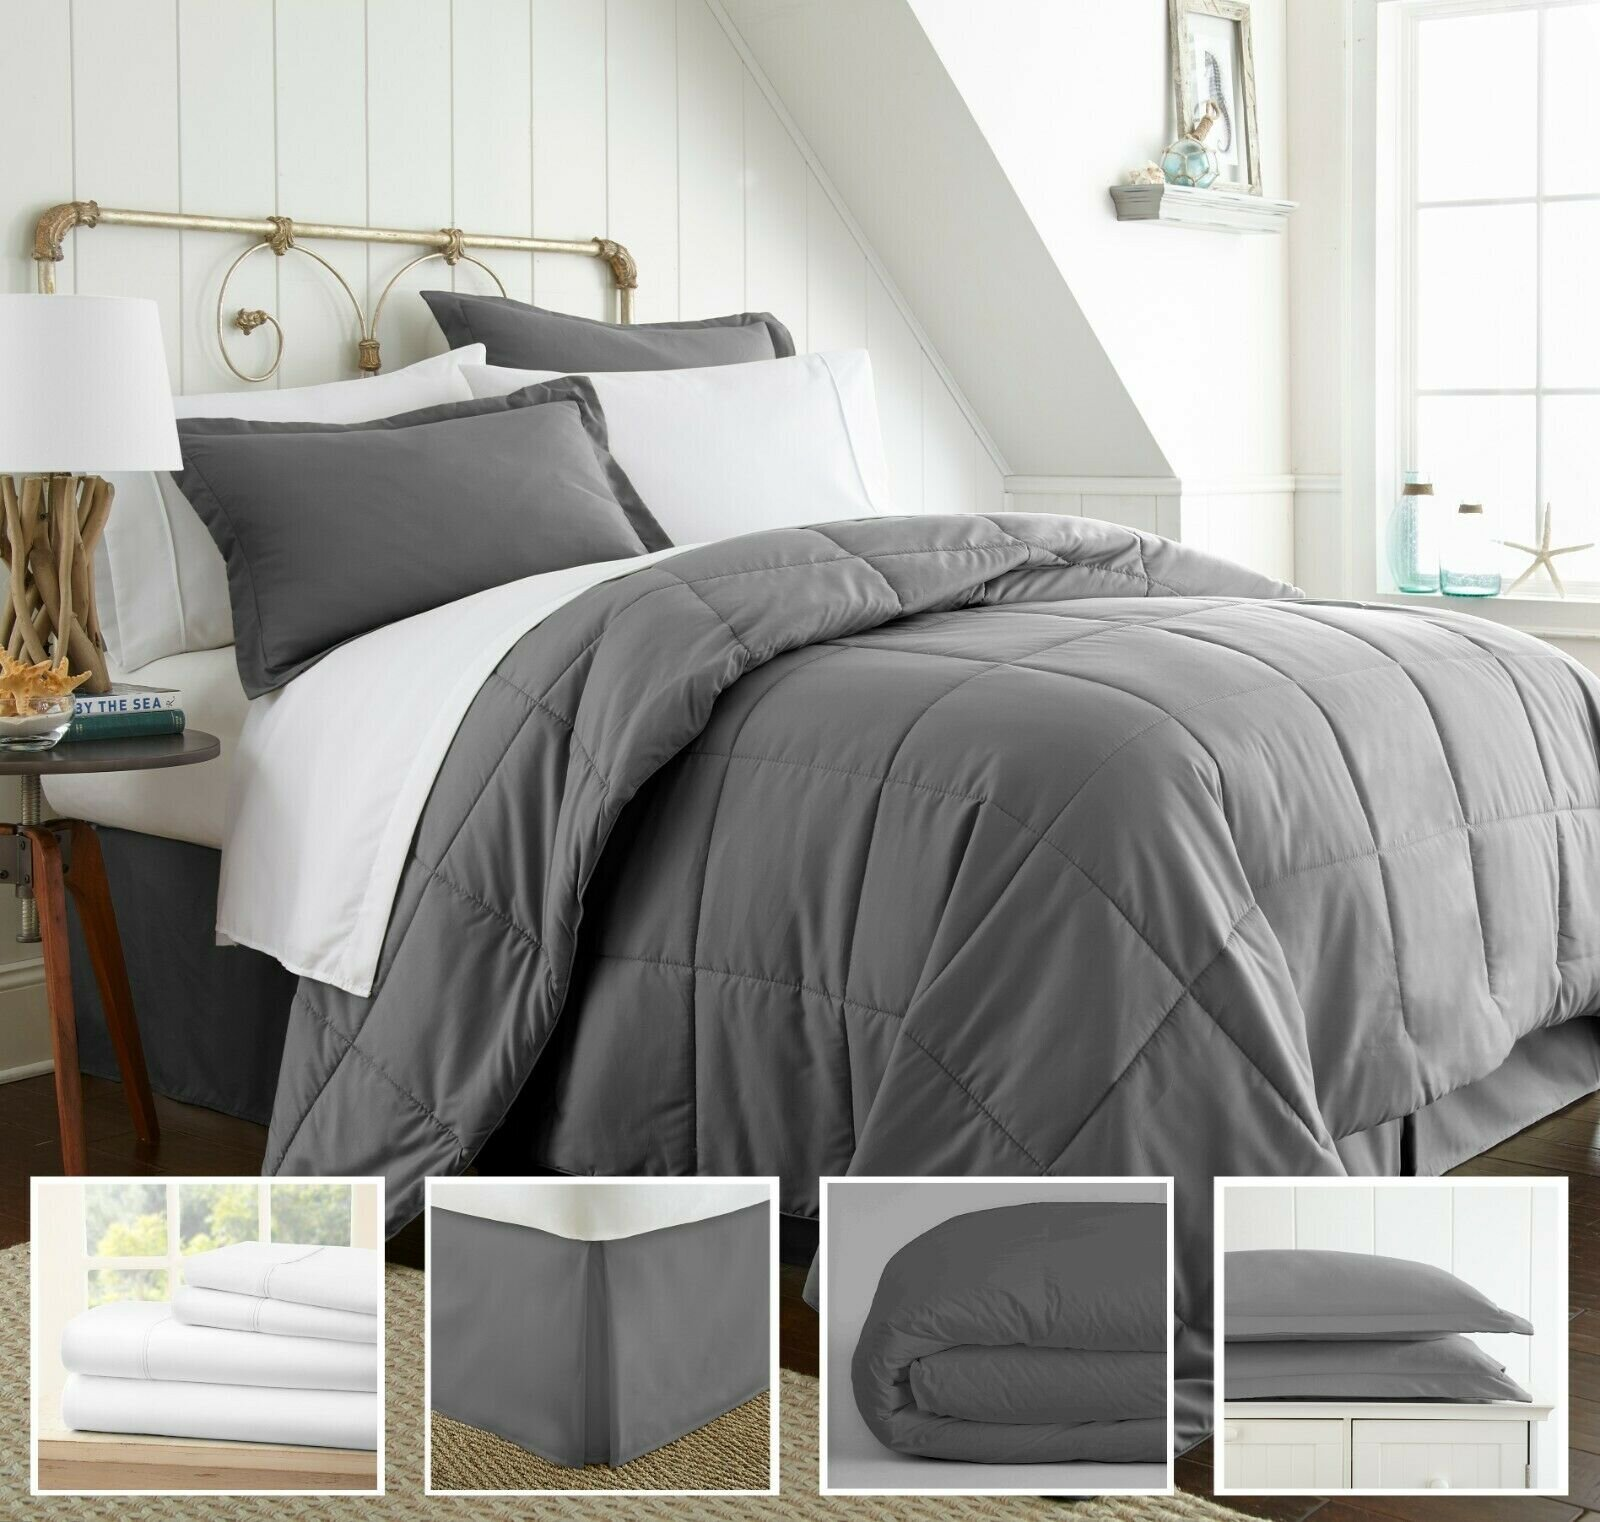 Home Collection Ultra Soft 8pc Hypoallergenic Bedding Set   Reg Price: $200   Today's Price: $33 (84% off!)    via eBay